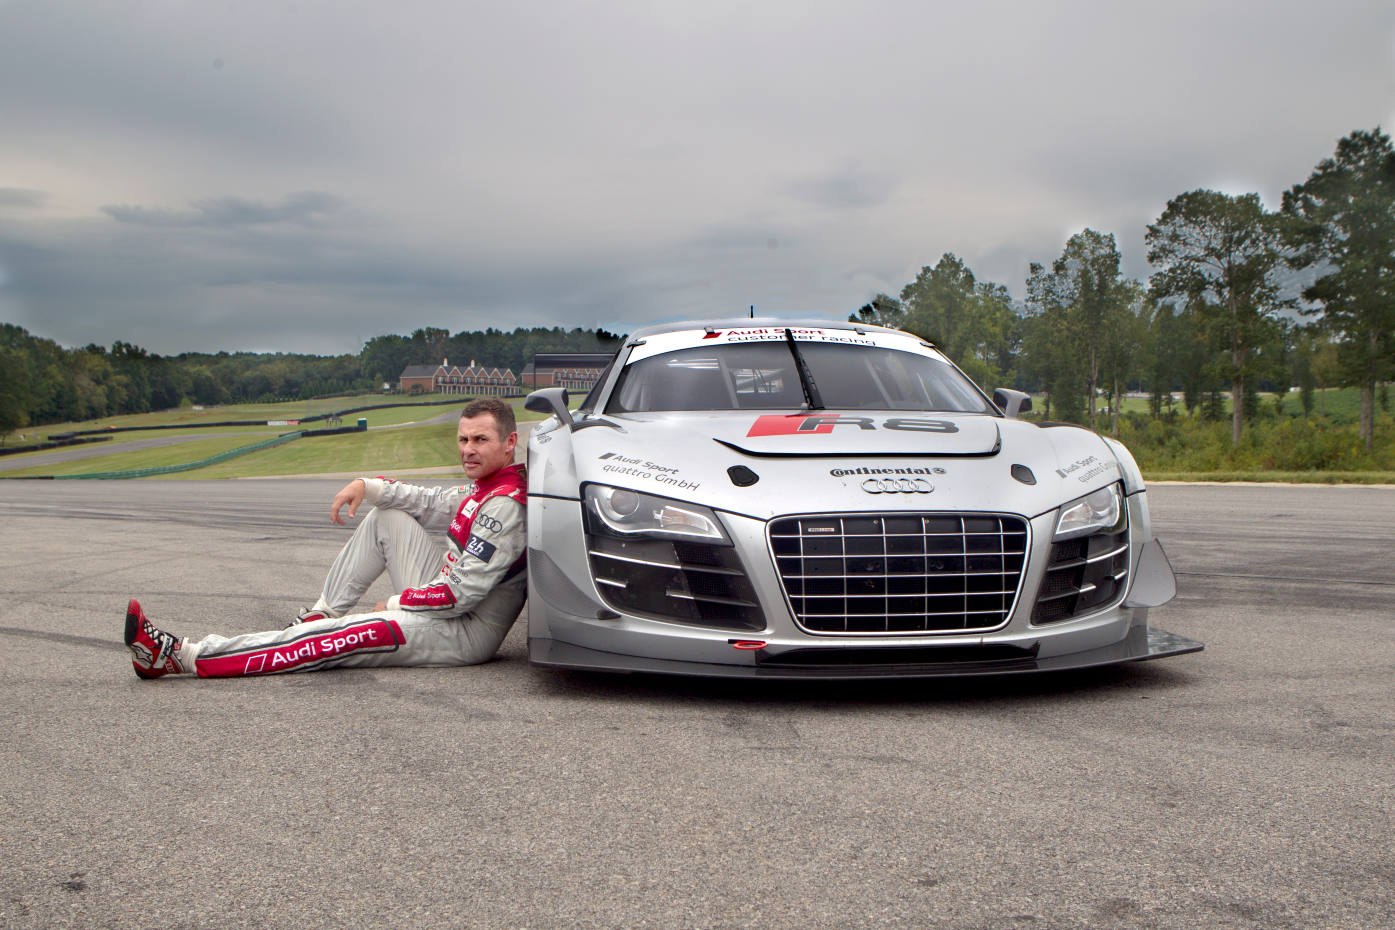 Tom Kristensen on the racecourse with an Audi R8